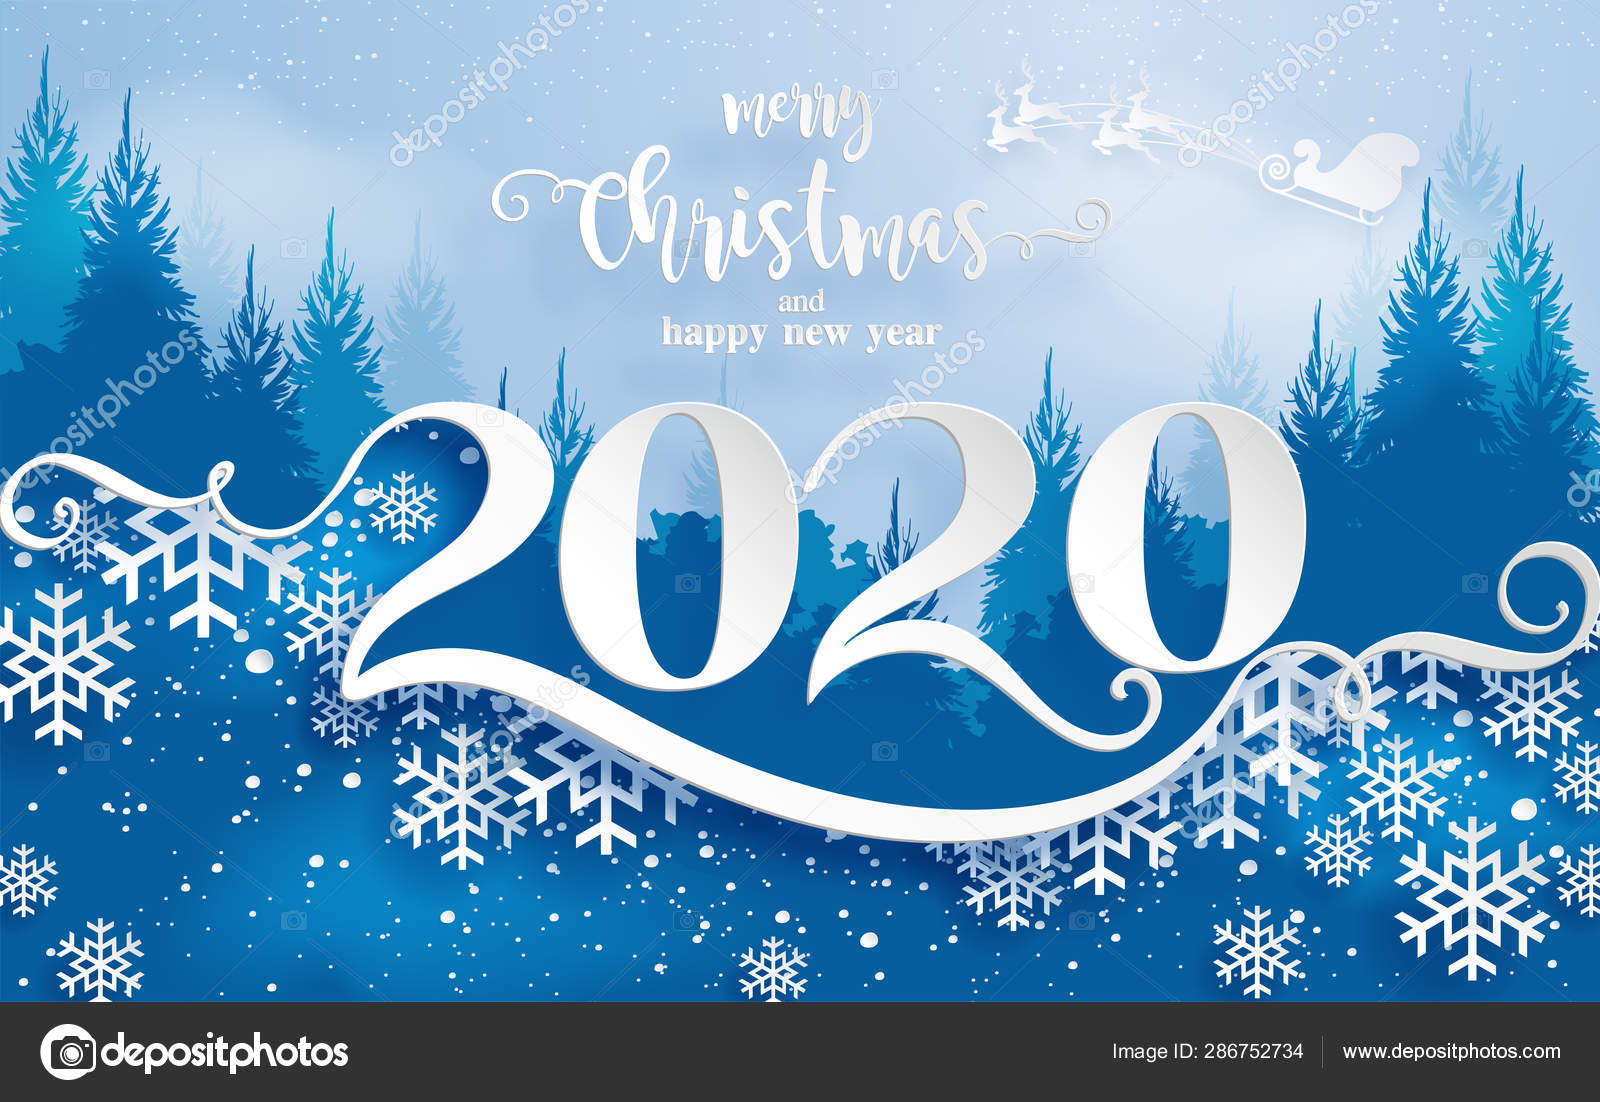 merry christmas greetings happy new year 2020 templates beautiful winter stock vector c olaf1741 gmail com 286752734 merry christmas greetings happy new year 2020 templates beautiful winter stock vector c olaf1741 gmail com 286752734